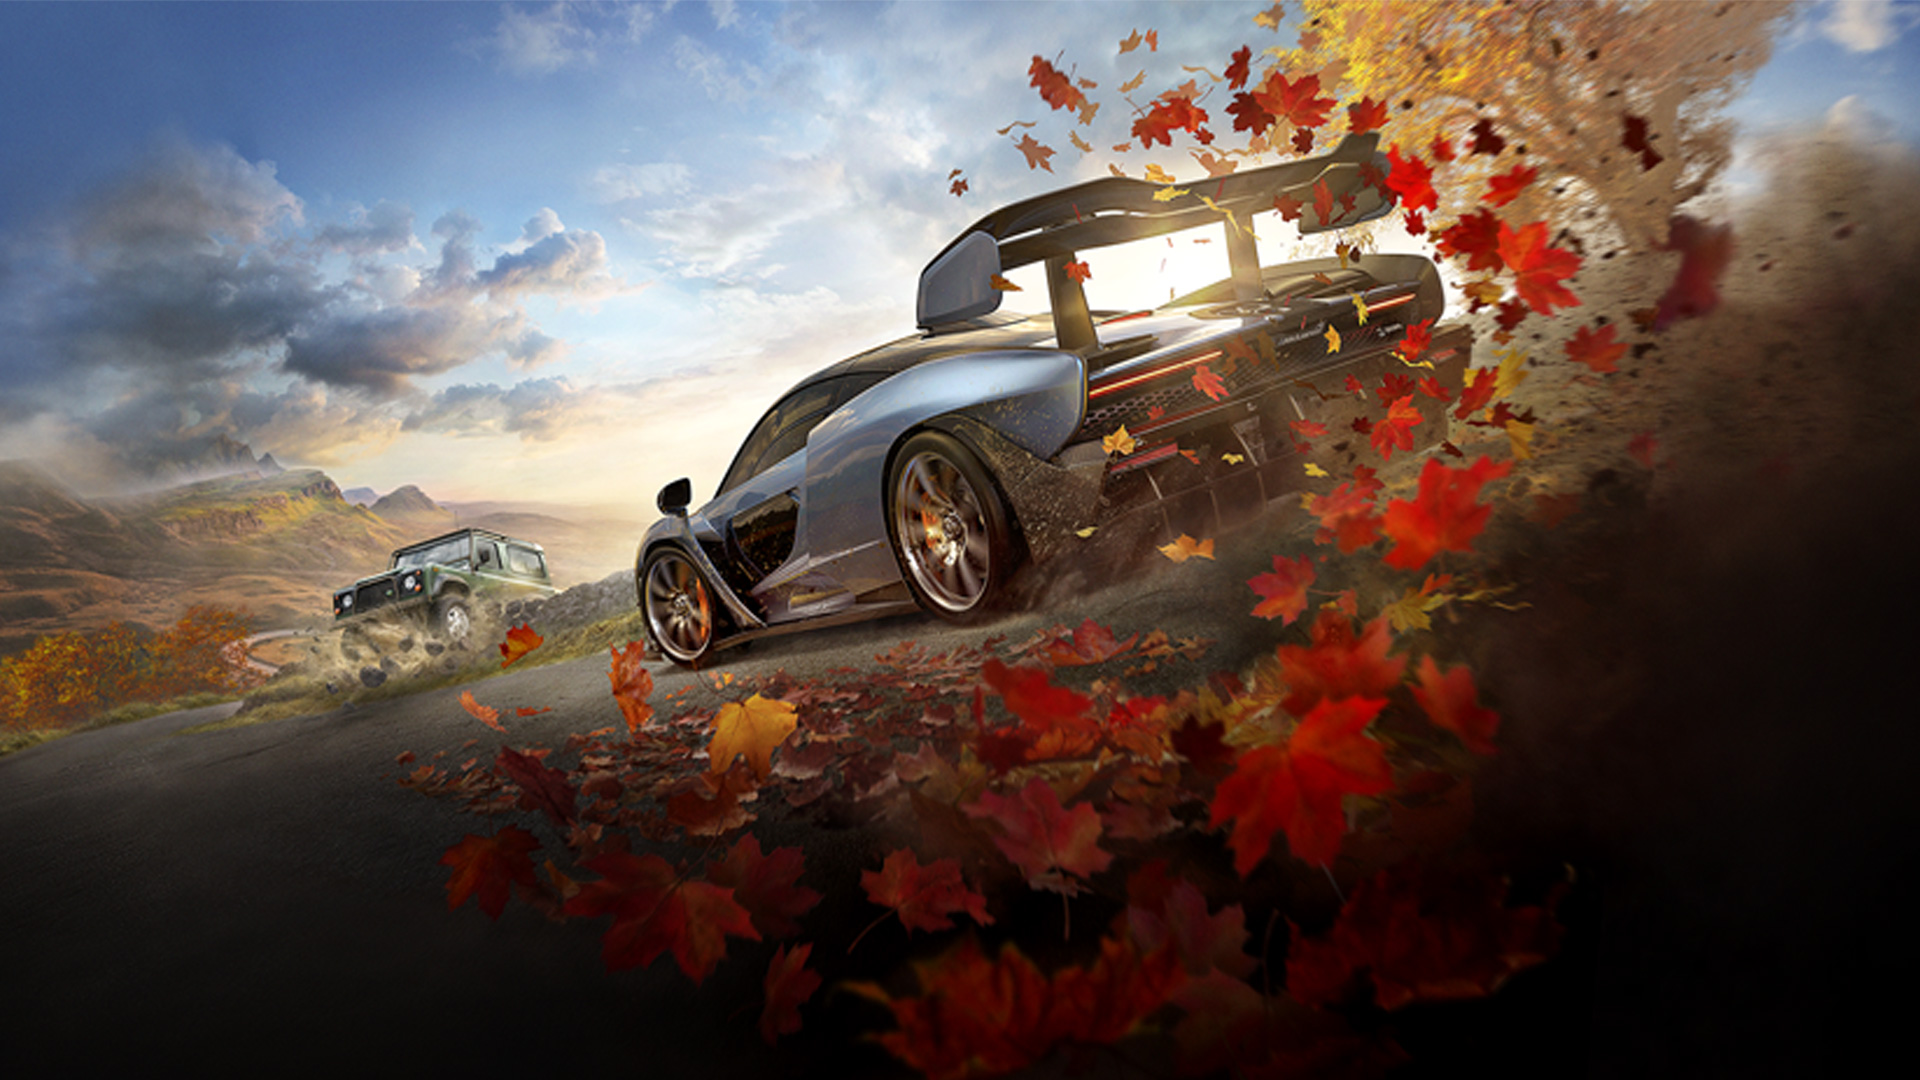 Game art for Forza Horizon 4, showing a sports car racing through autumn leaves